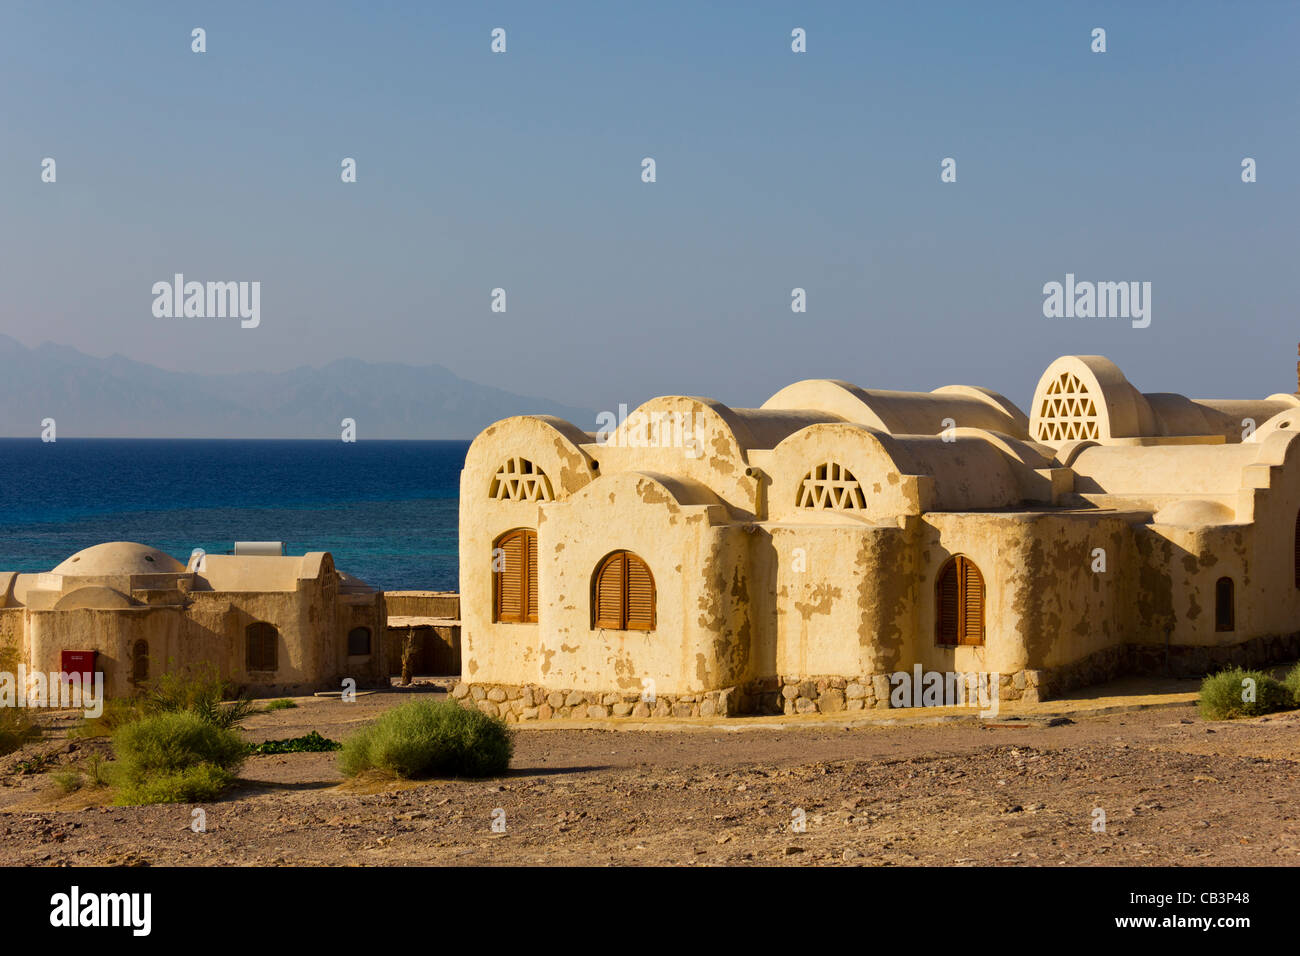 Basata eco-lodge, Gulf of Aqaba, South Sinai, Egypt - Stock Image